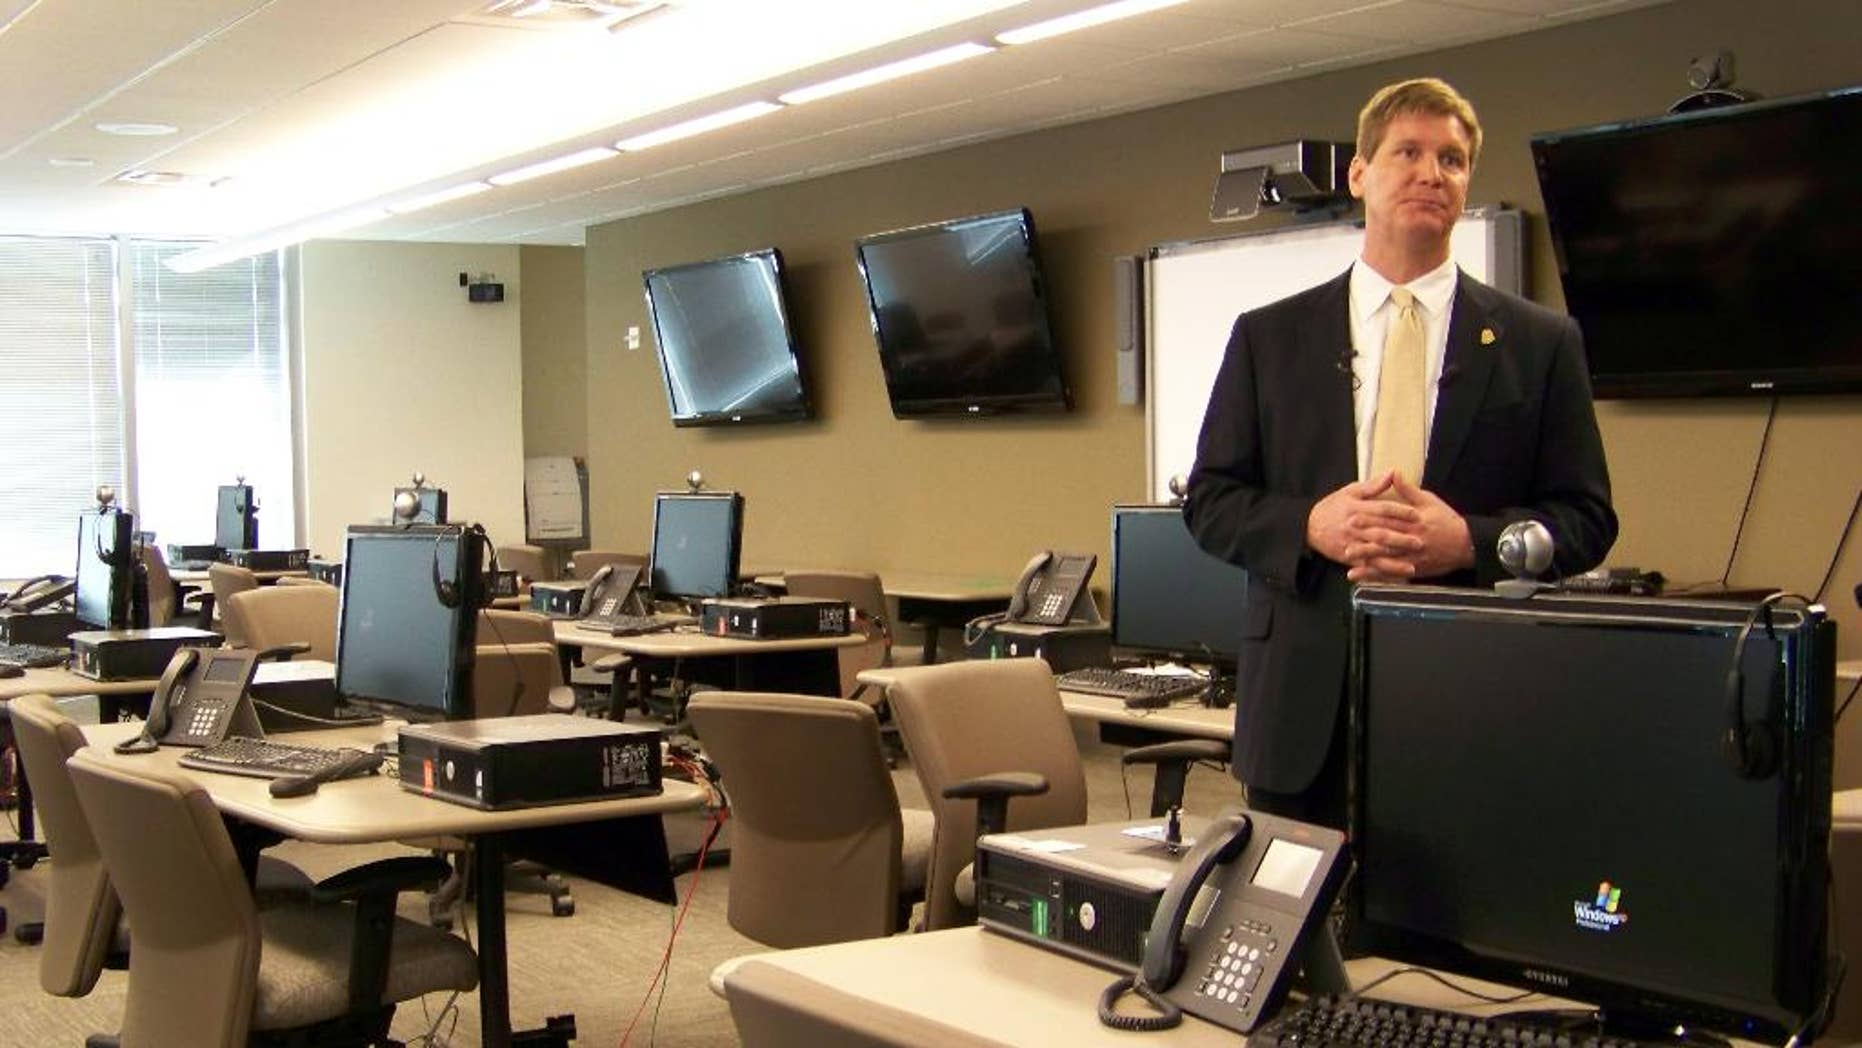 File- This March 9, 2012, file photo shows FBI spokesman Kyle Loven giving a tour of the Emergency Operations Center at the new Minneapolis-area field office in Brooklyn Center, Minn. Loven, spokesman for the Minneapolis office of the FBI, said six people were arrested Sunday, April 19, 2015, but gave no further details. An FBI spokesman in San Diego referred questions to Loven. (AP Photo/Amy Forliti, File)